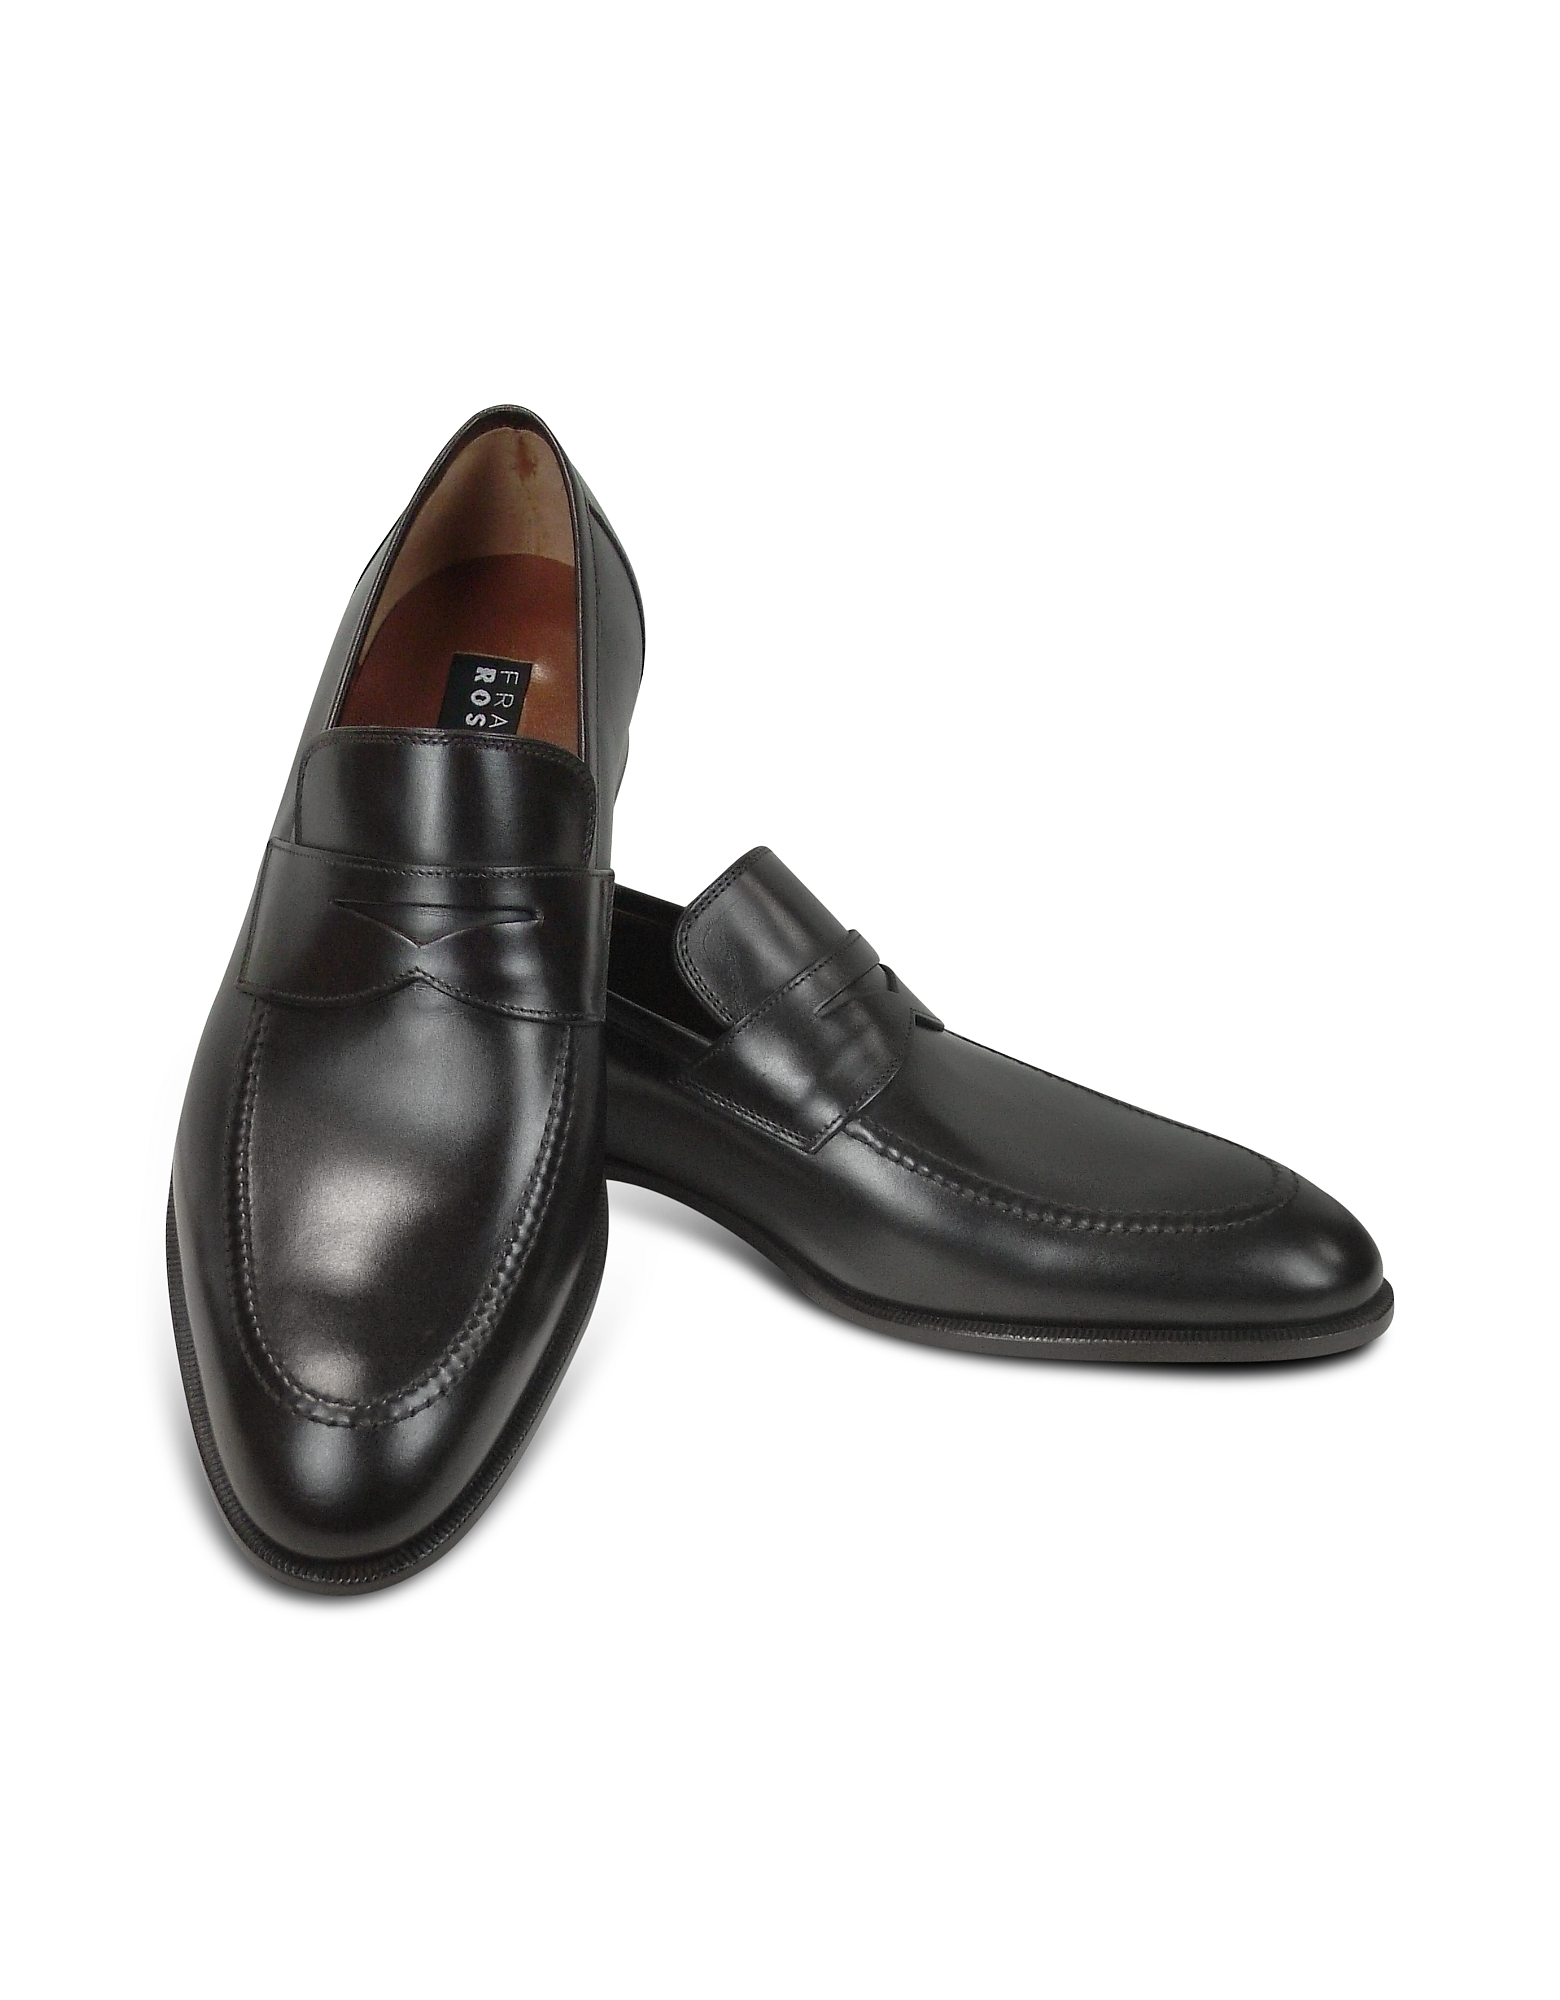 Fratelli Rossetti Shoes, Black Calf Leather Penny Loafer Shoes